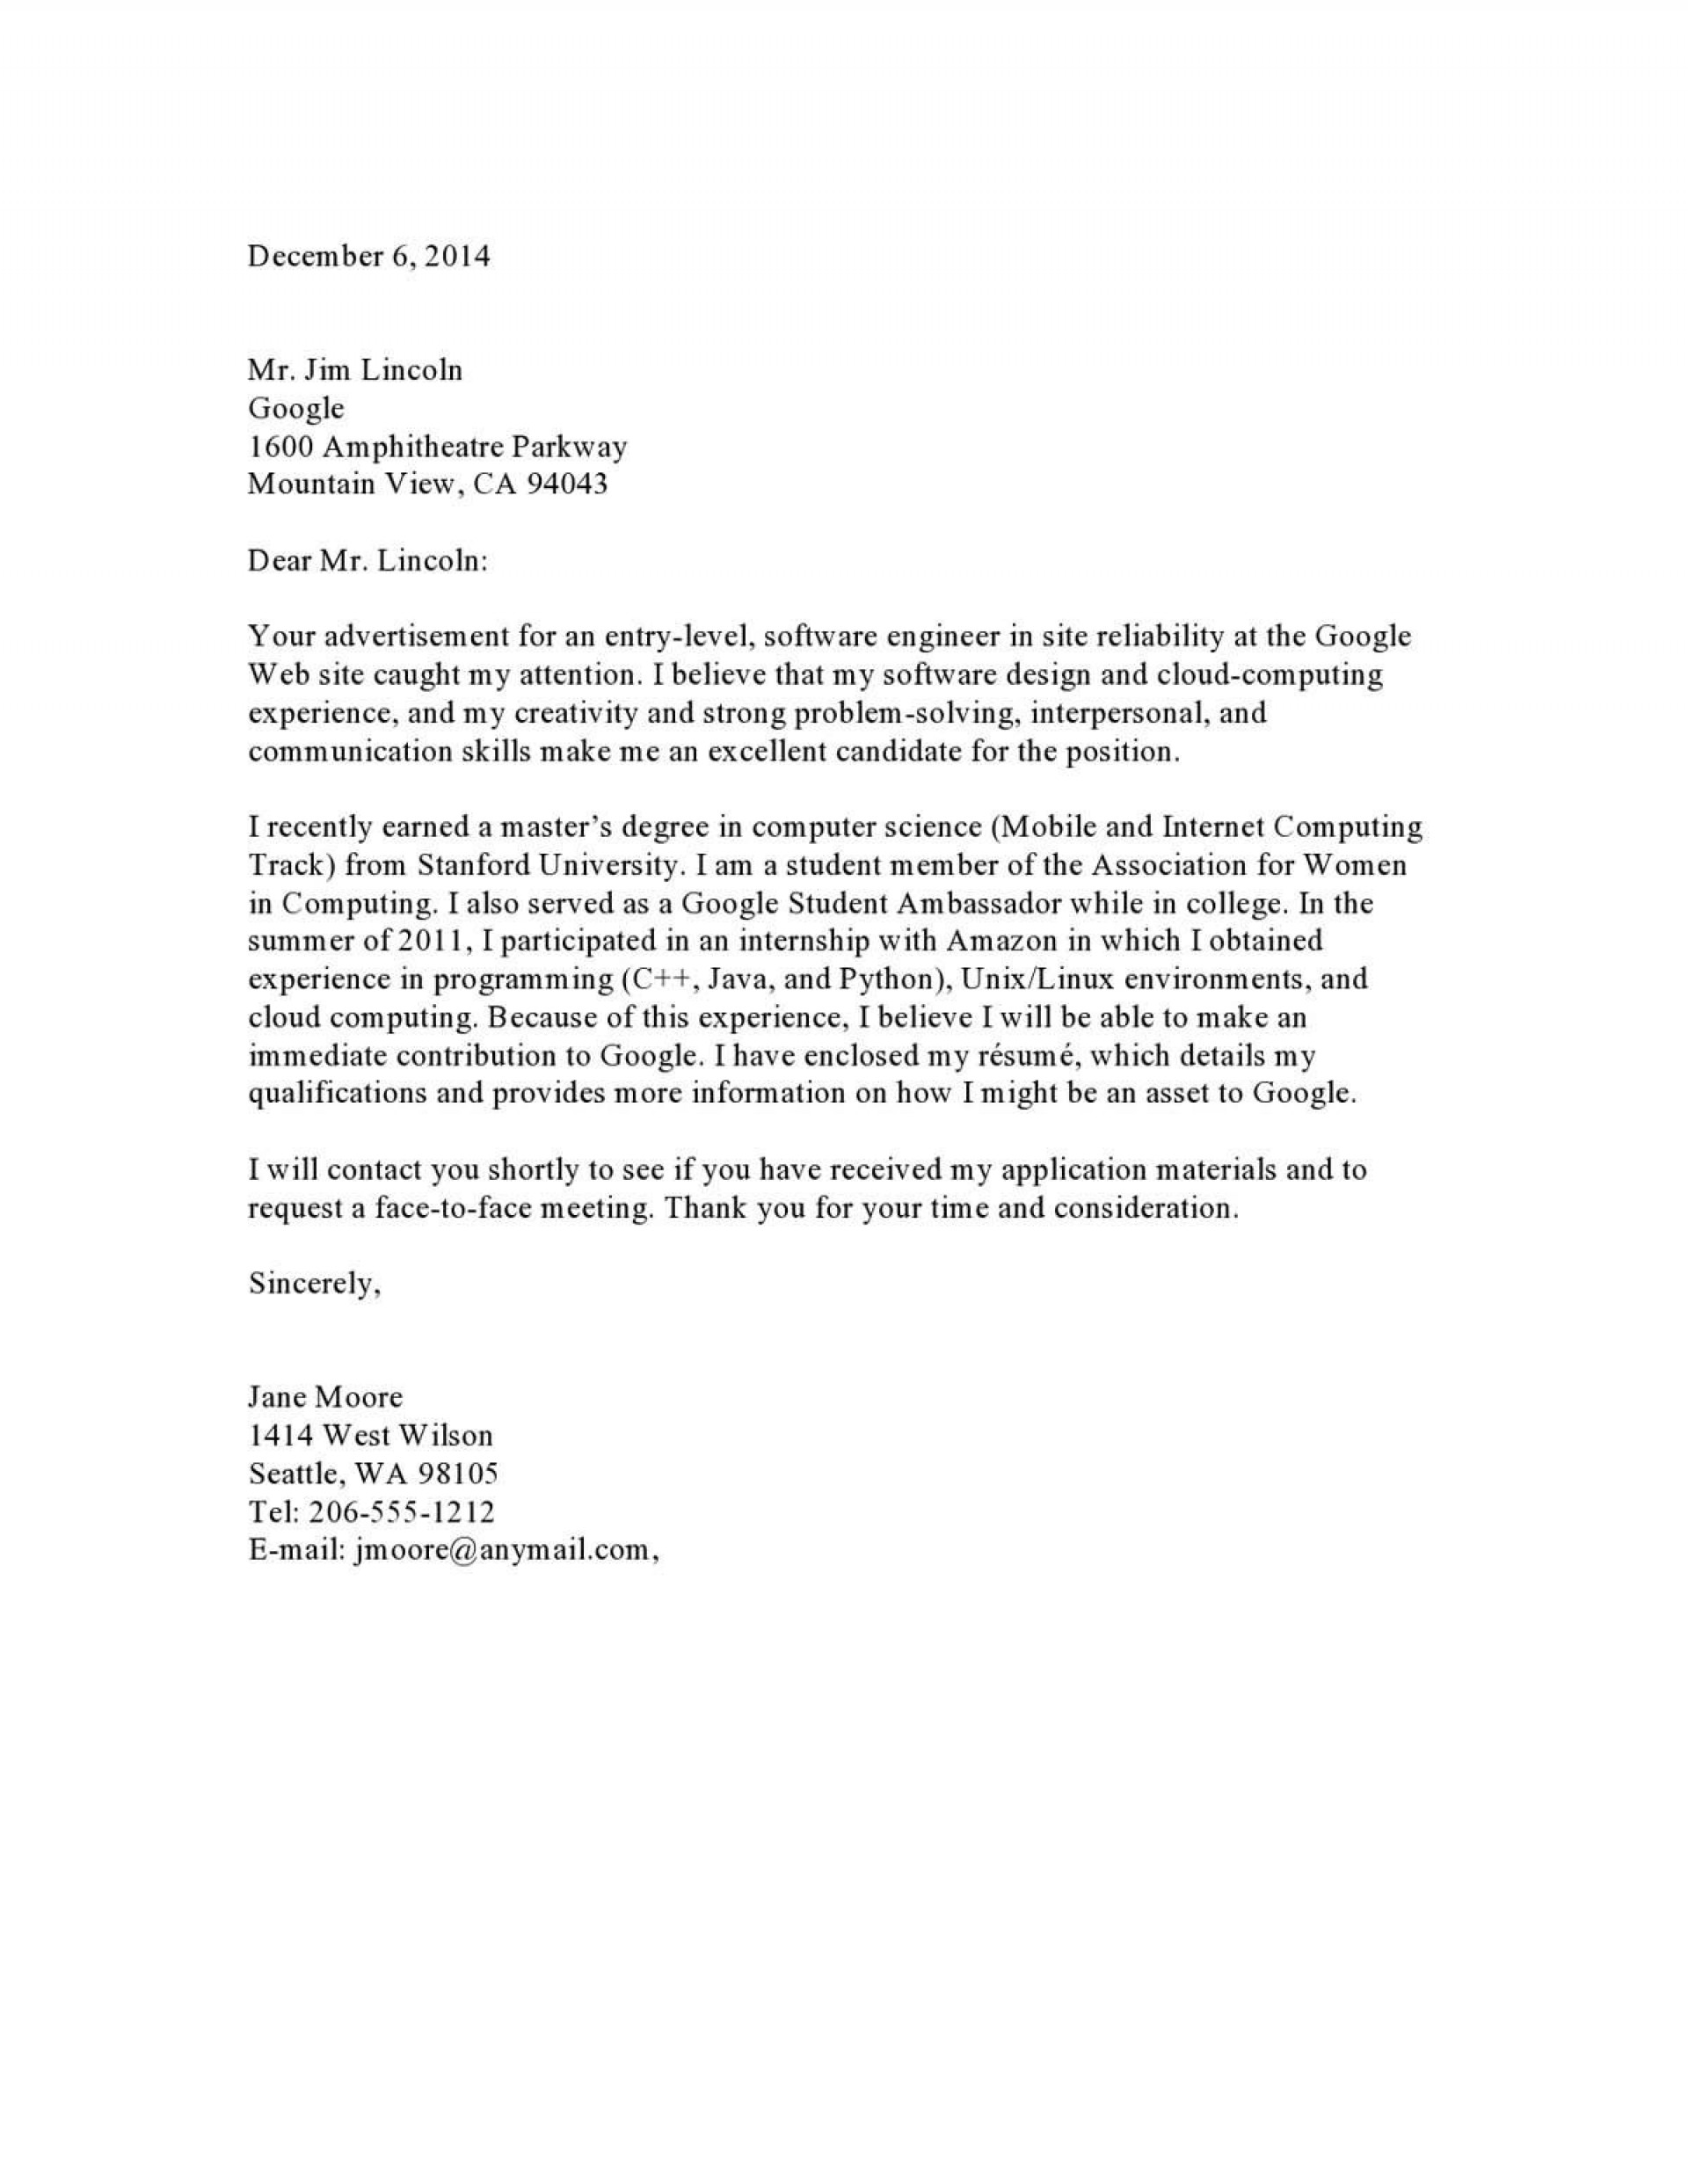 003 Striking Cover Letter Template Office Online High Def  Microsoft1920